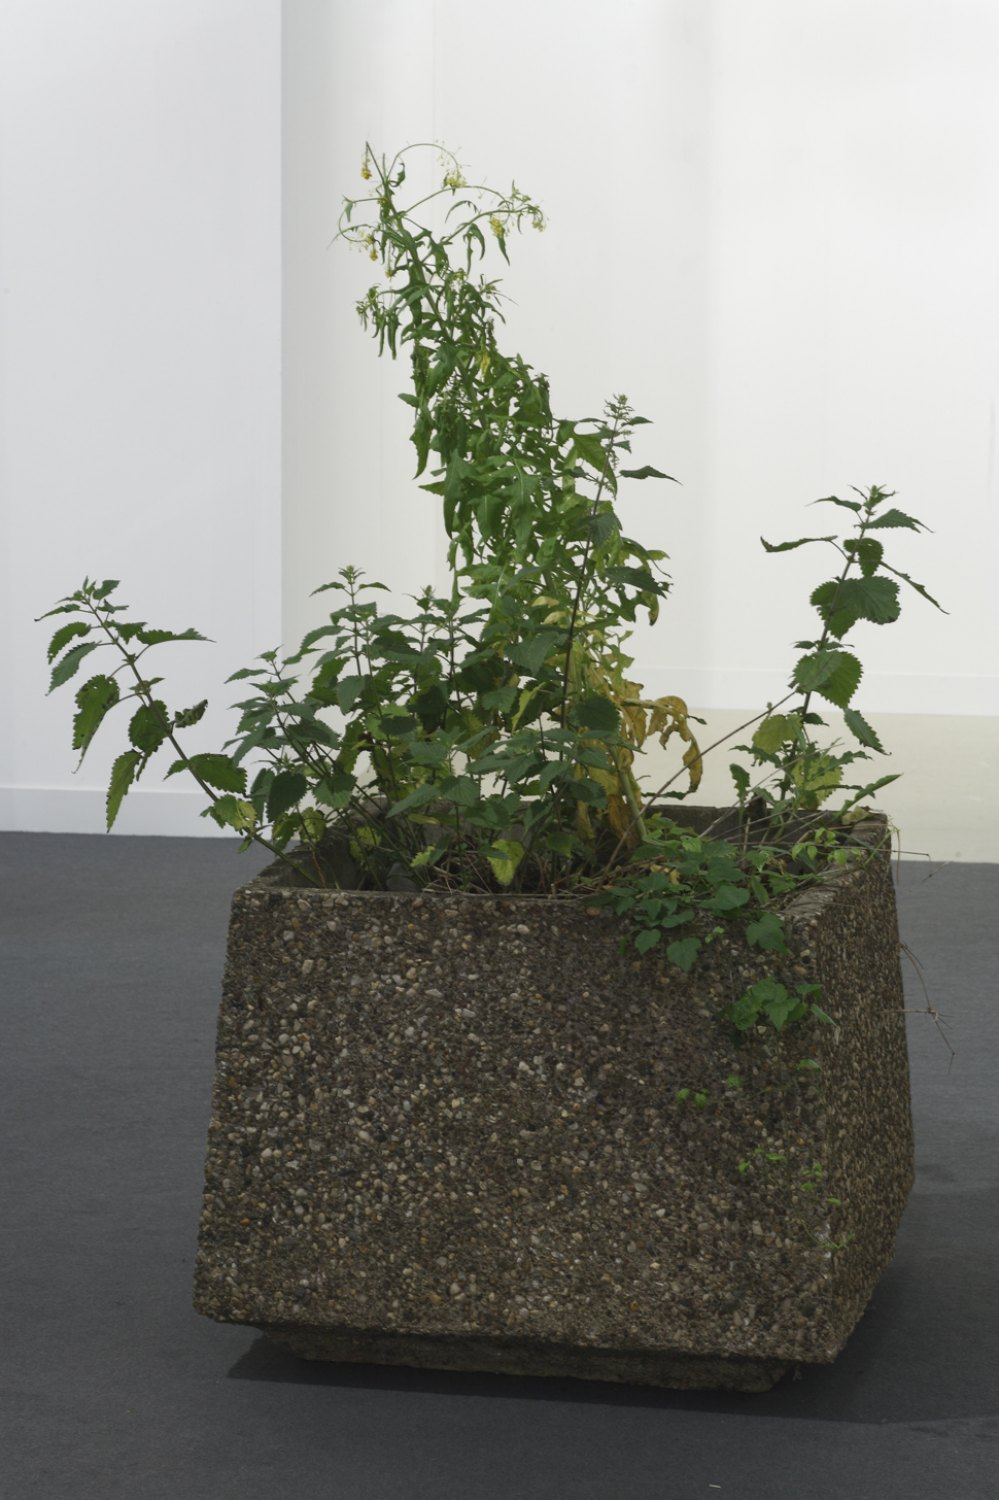 Manfred Pernice   Untitled, 2009  Cement, earth, plant,  60 × 80 × 80cm (without plants)